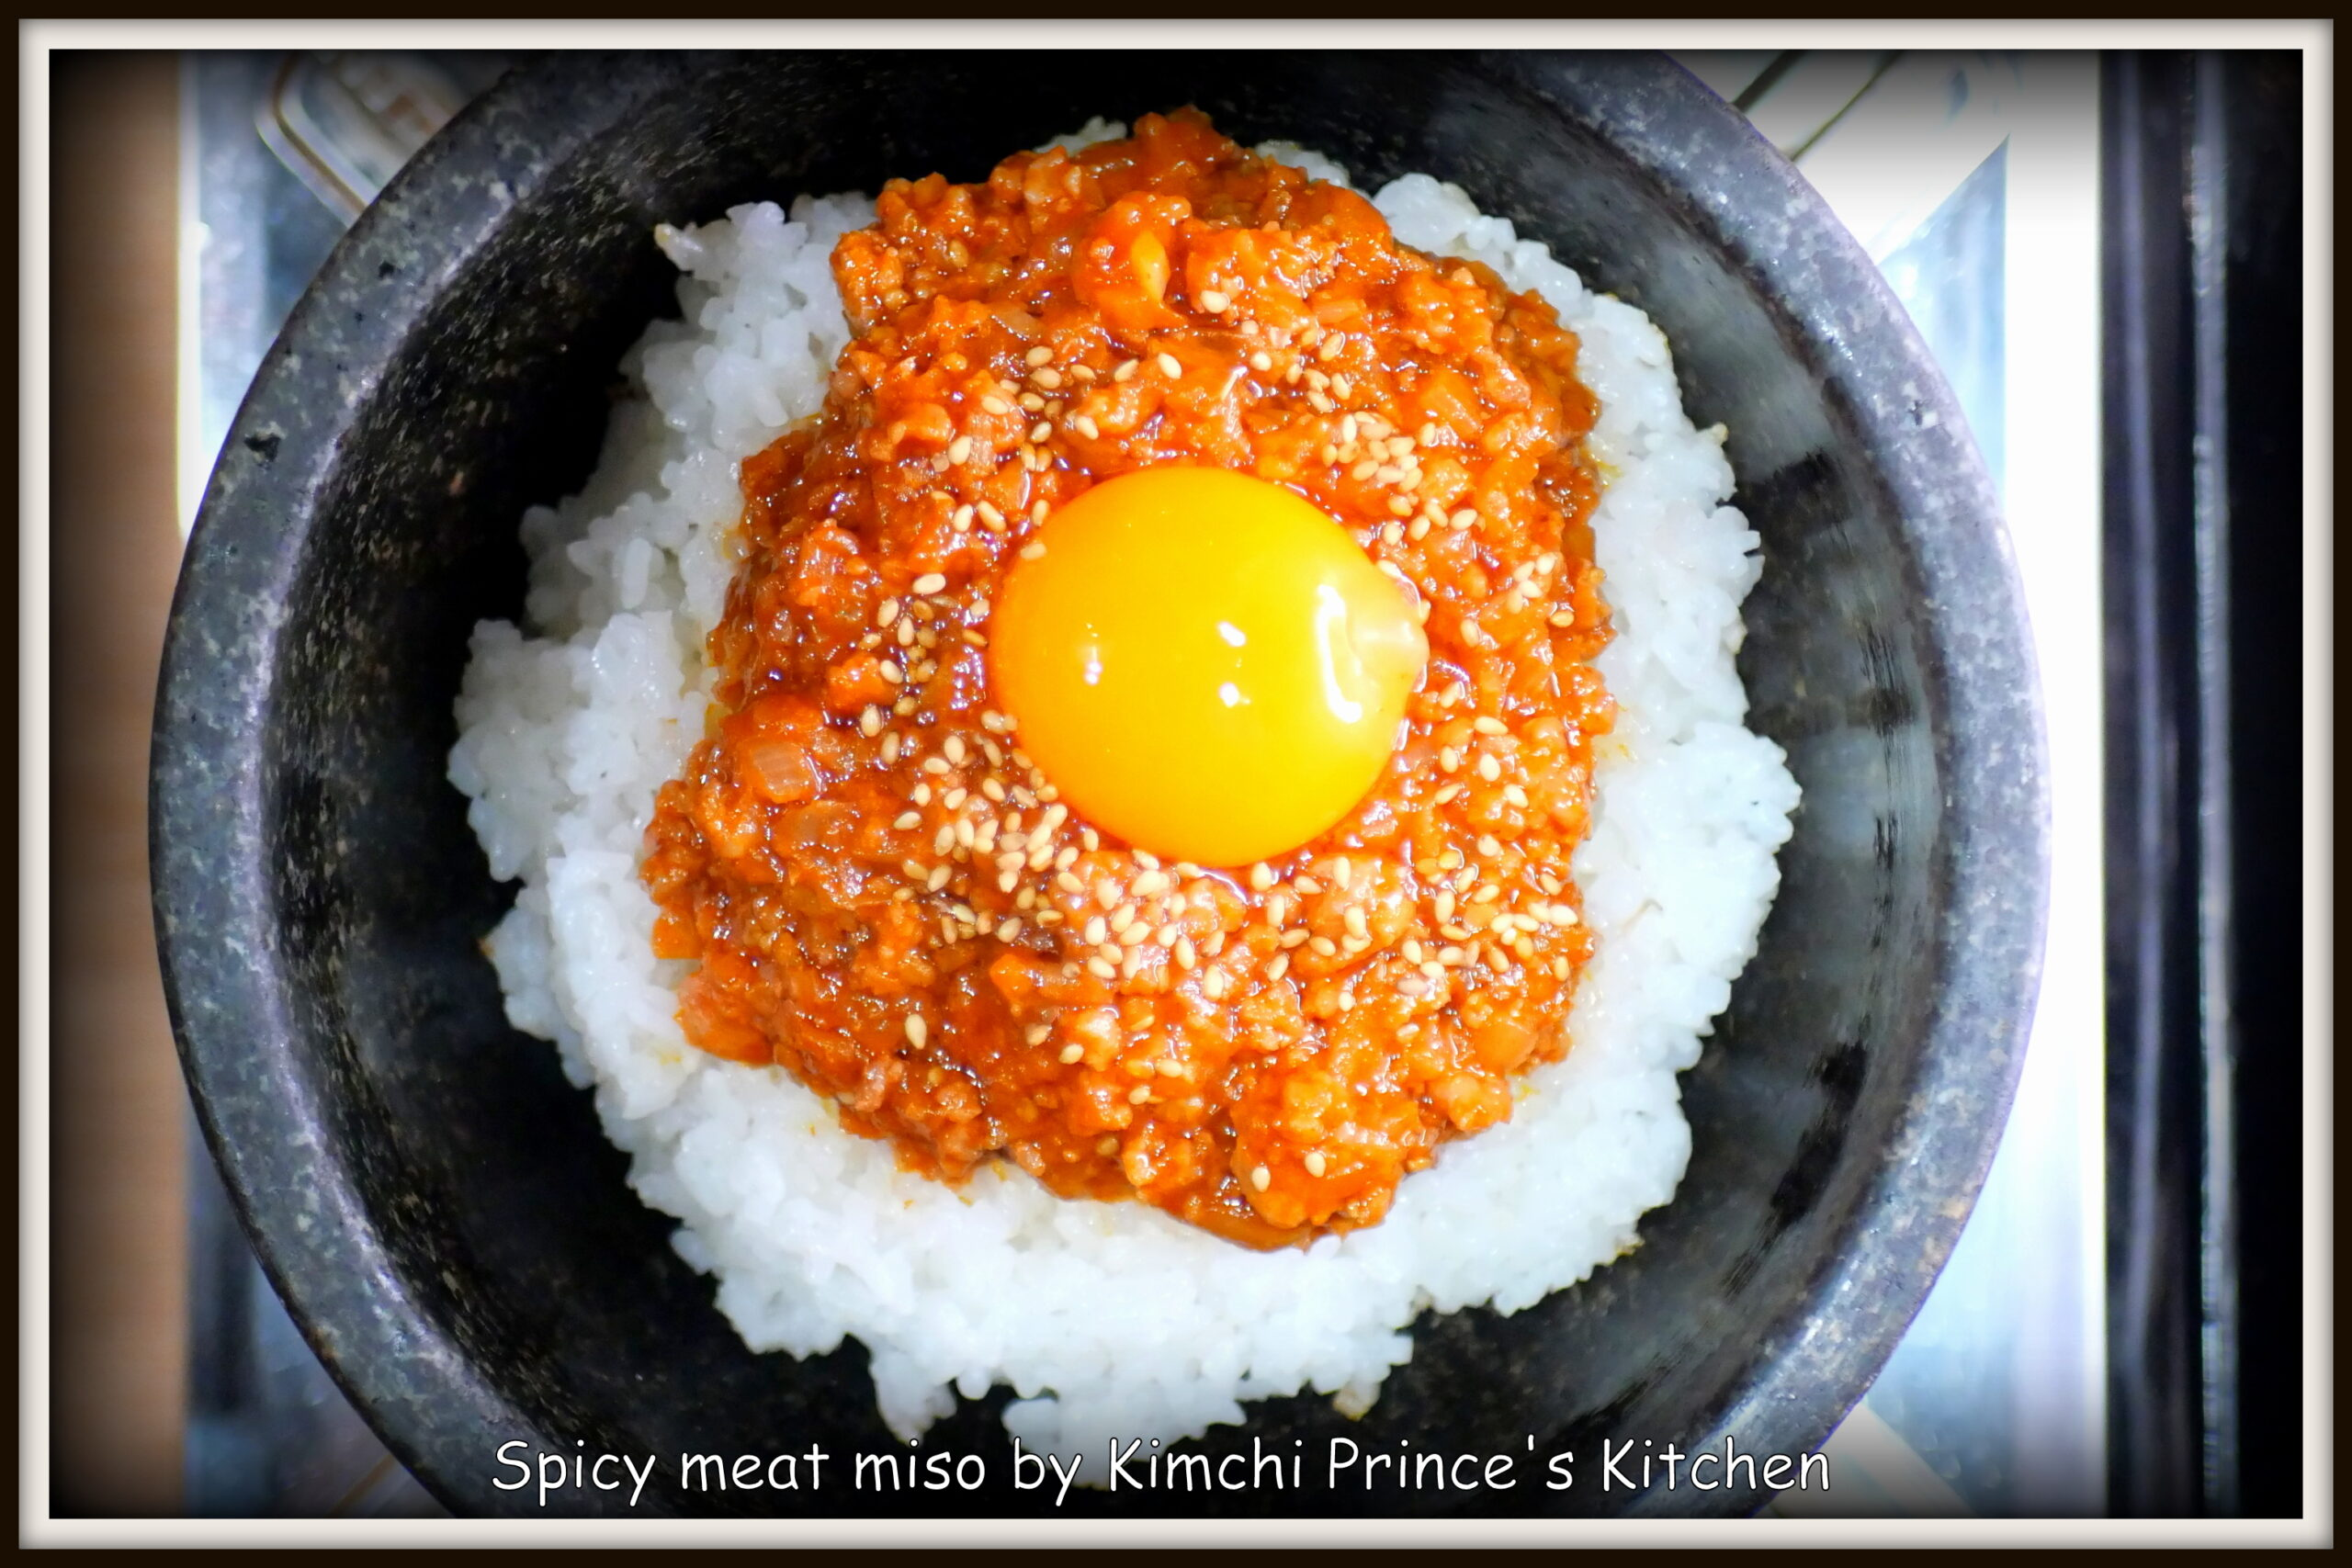 Spicy meat miso